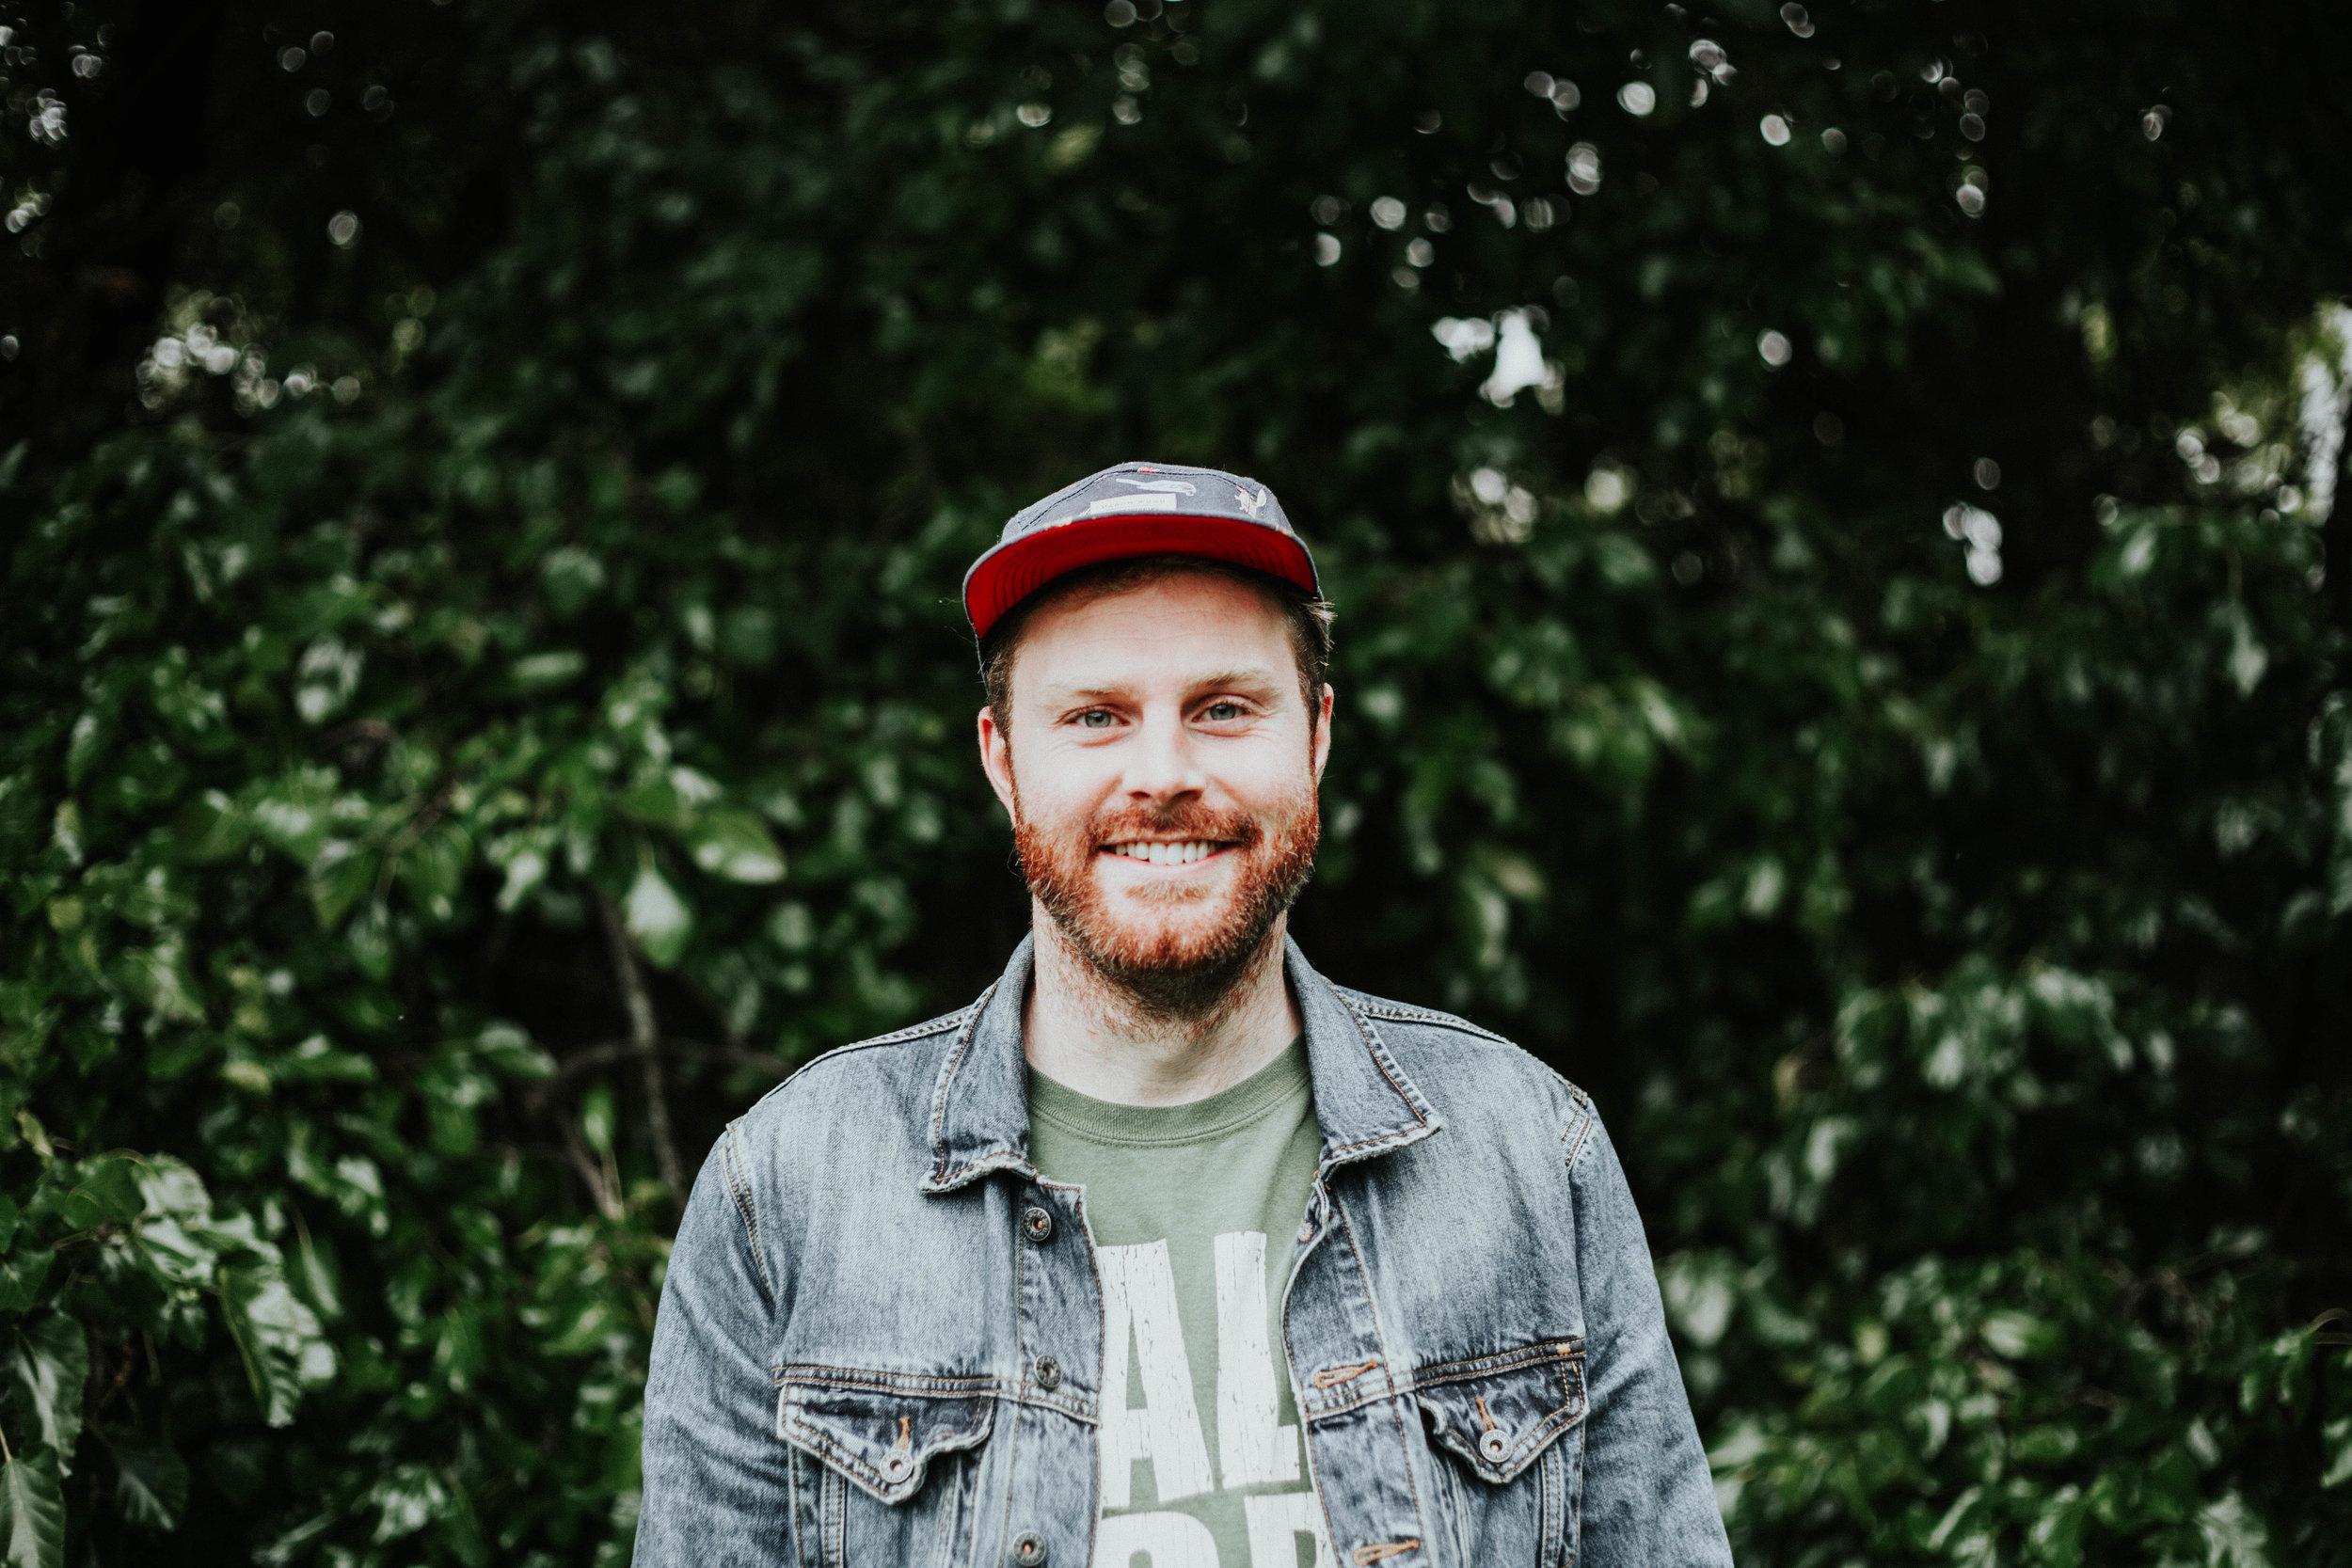 Ronald Radcliffe, Pastor - I'm a dreamer, game creator, and co-planter, pilot, and pastor of City Chapel. I care deeply about living the gospel everyday. I love to play games, dance with our english shepherd Finley, and have deep conversations that touch on my convictions and faith in Christ. #thisiscitychapel.